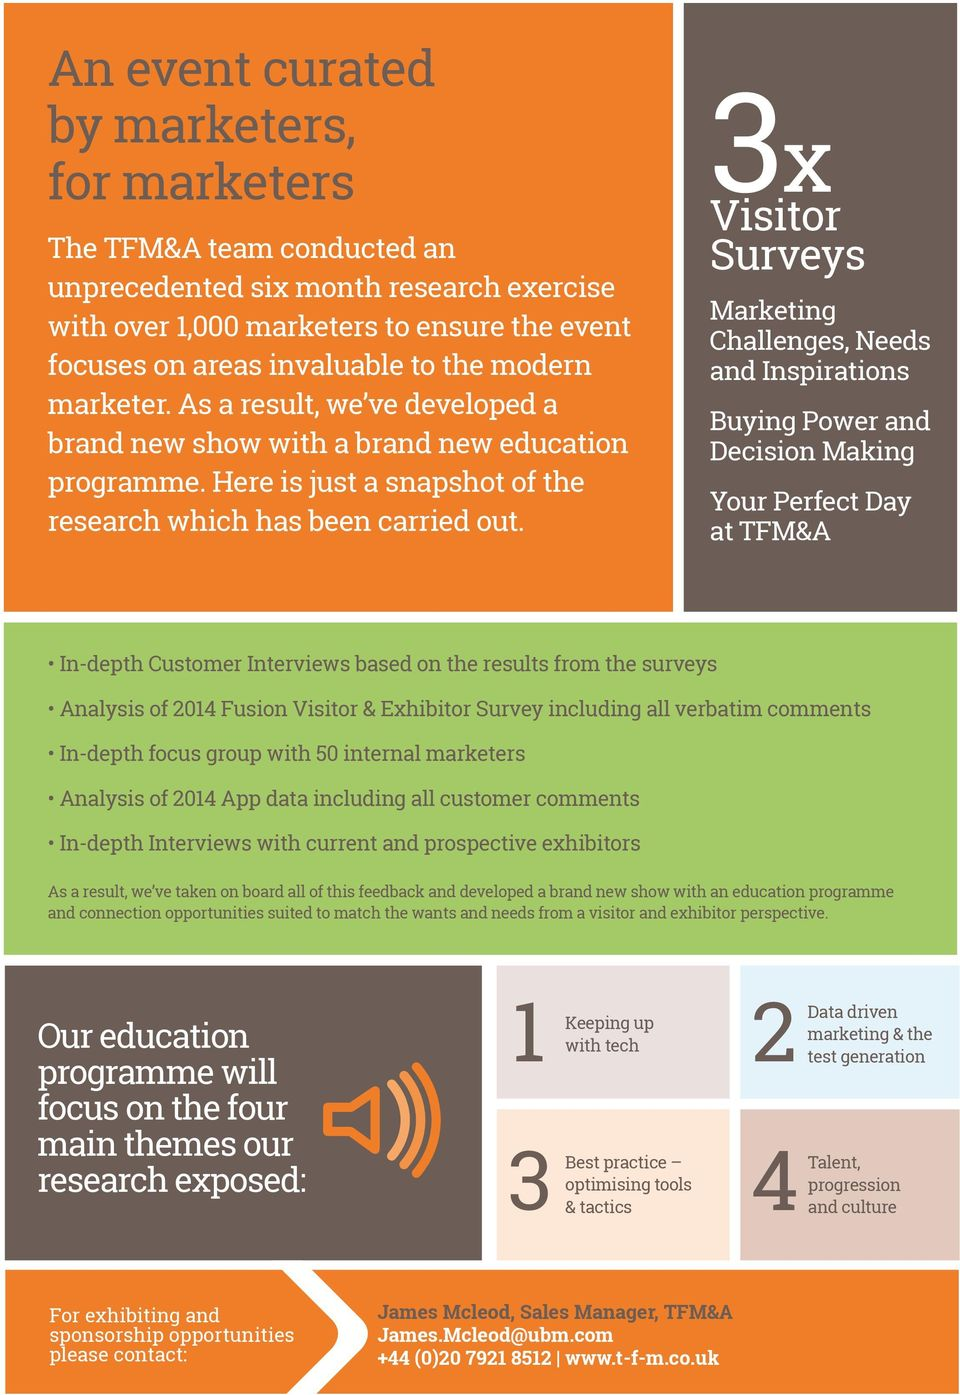 3x Visitor Surveys Marketing Challenges, Needs and Inspirations Buying Power and Decision Making Your Perfect Day at TFM&A In-depth Customer Interviews based on the results from the surveys Analysis